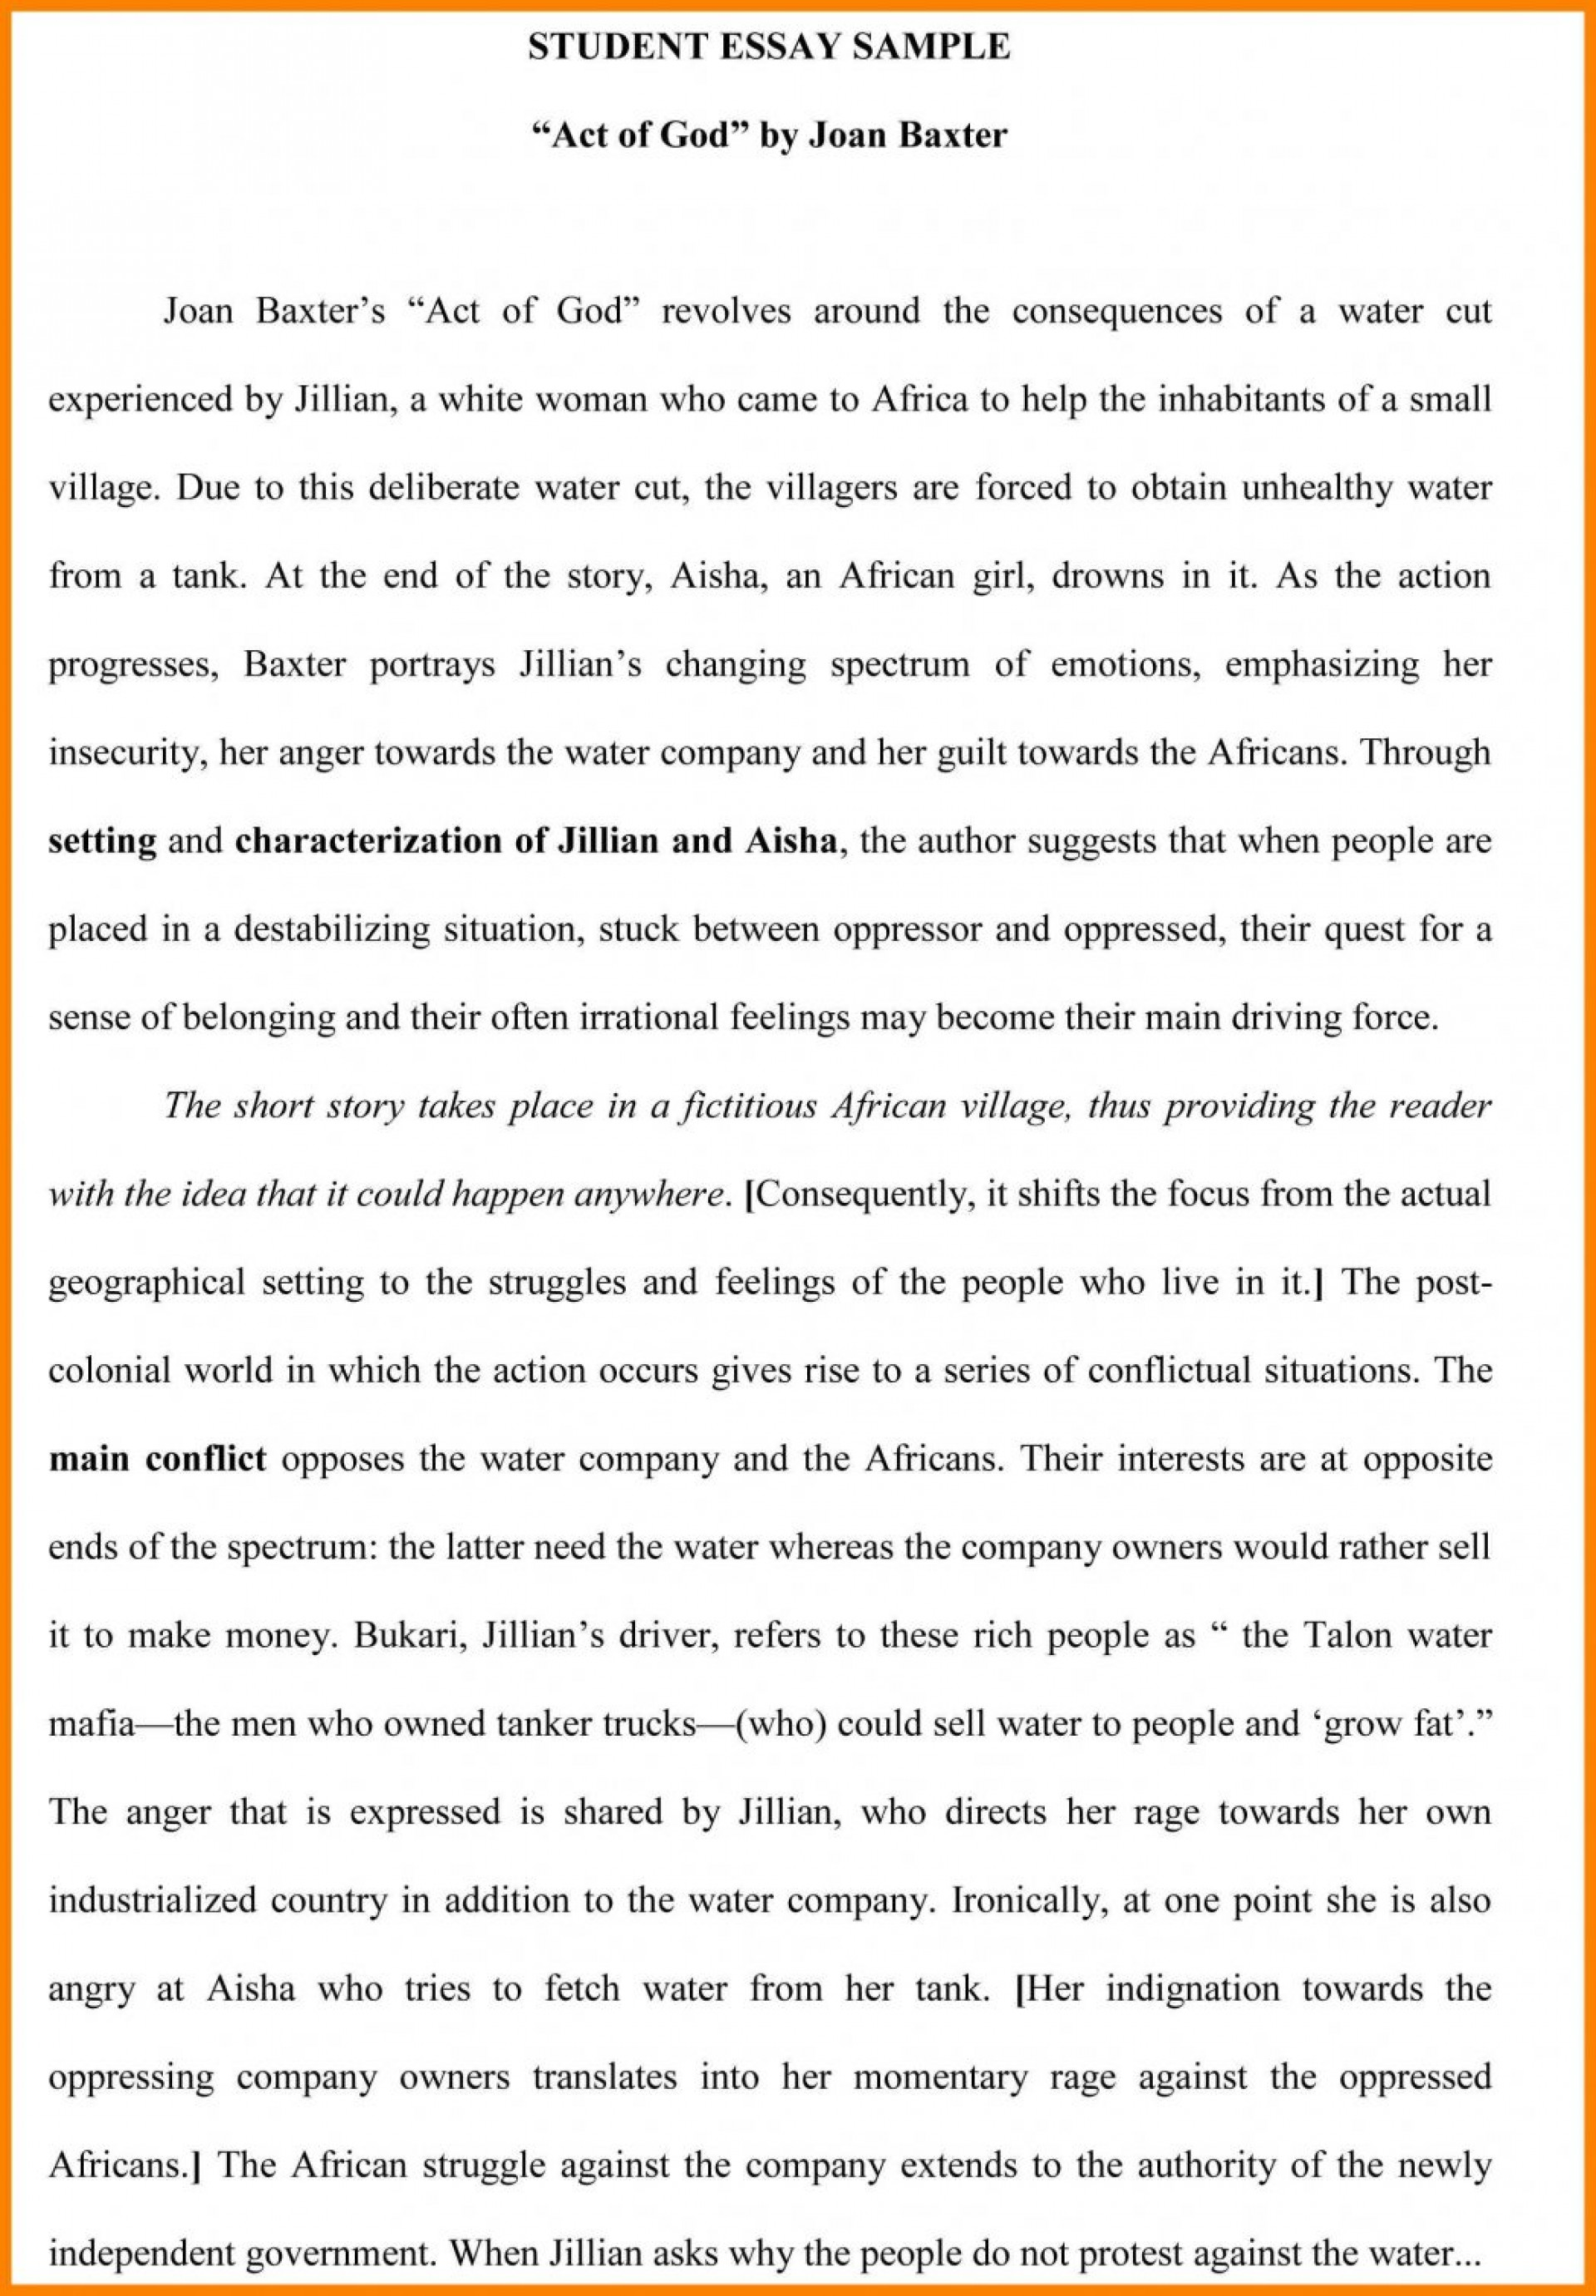 003 Examples Of Process Essays Pdf How To Write Good Student Better Download Descriptive Great Law Steve Foster Lauren Starkey 1048x1508 Essay Ideas Marvelous Funny Analysis 1920